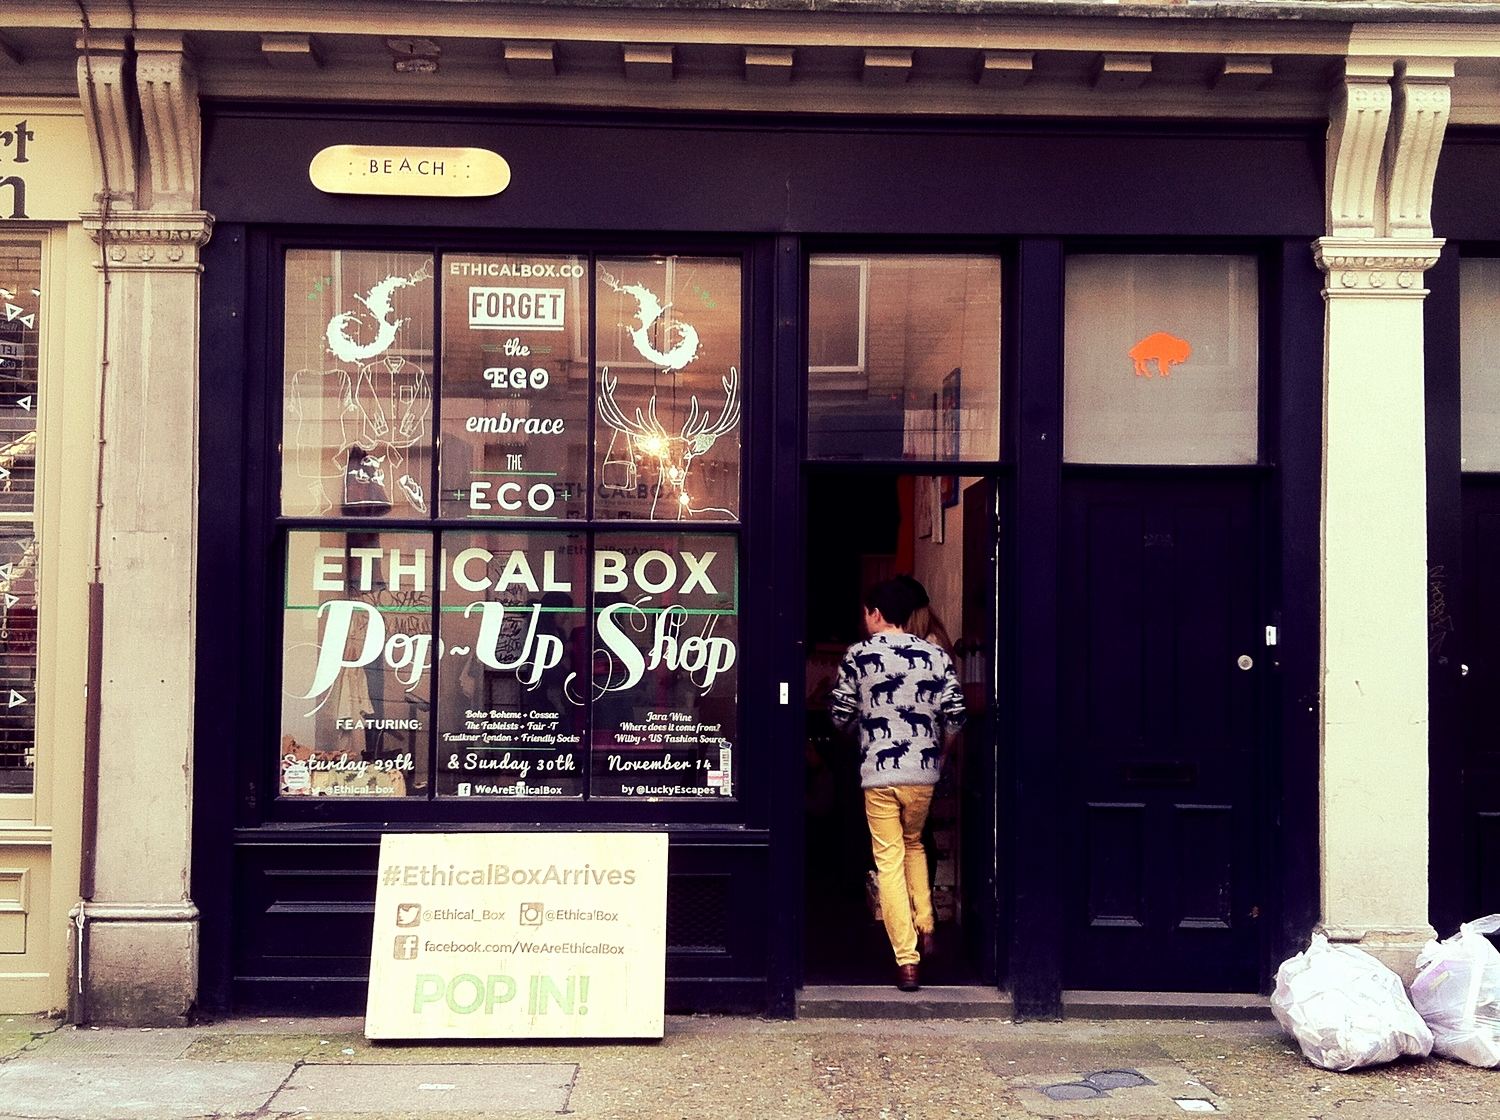 The Ethical Box Pop-up shop